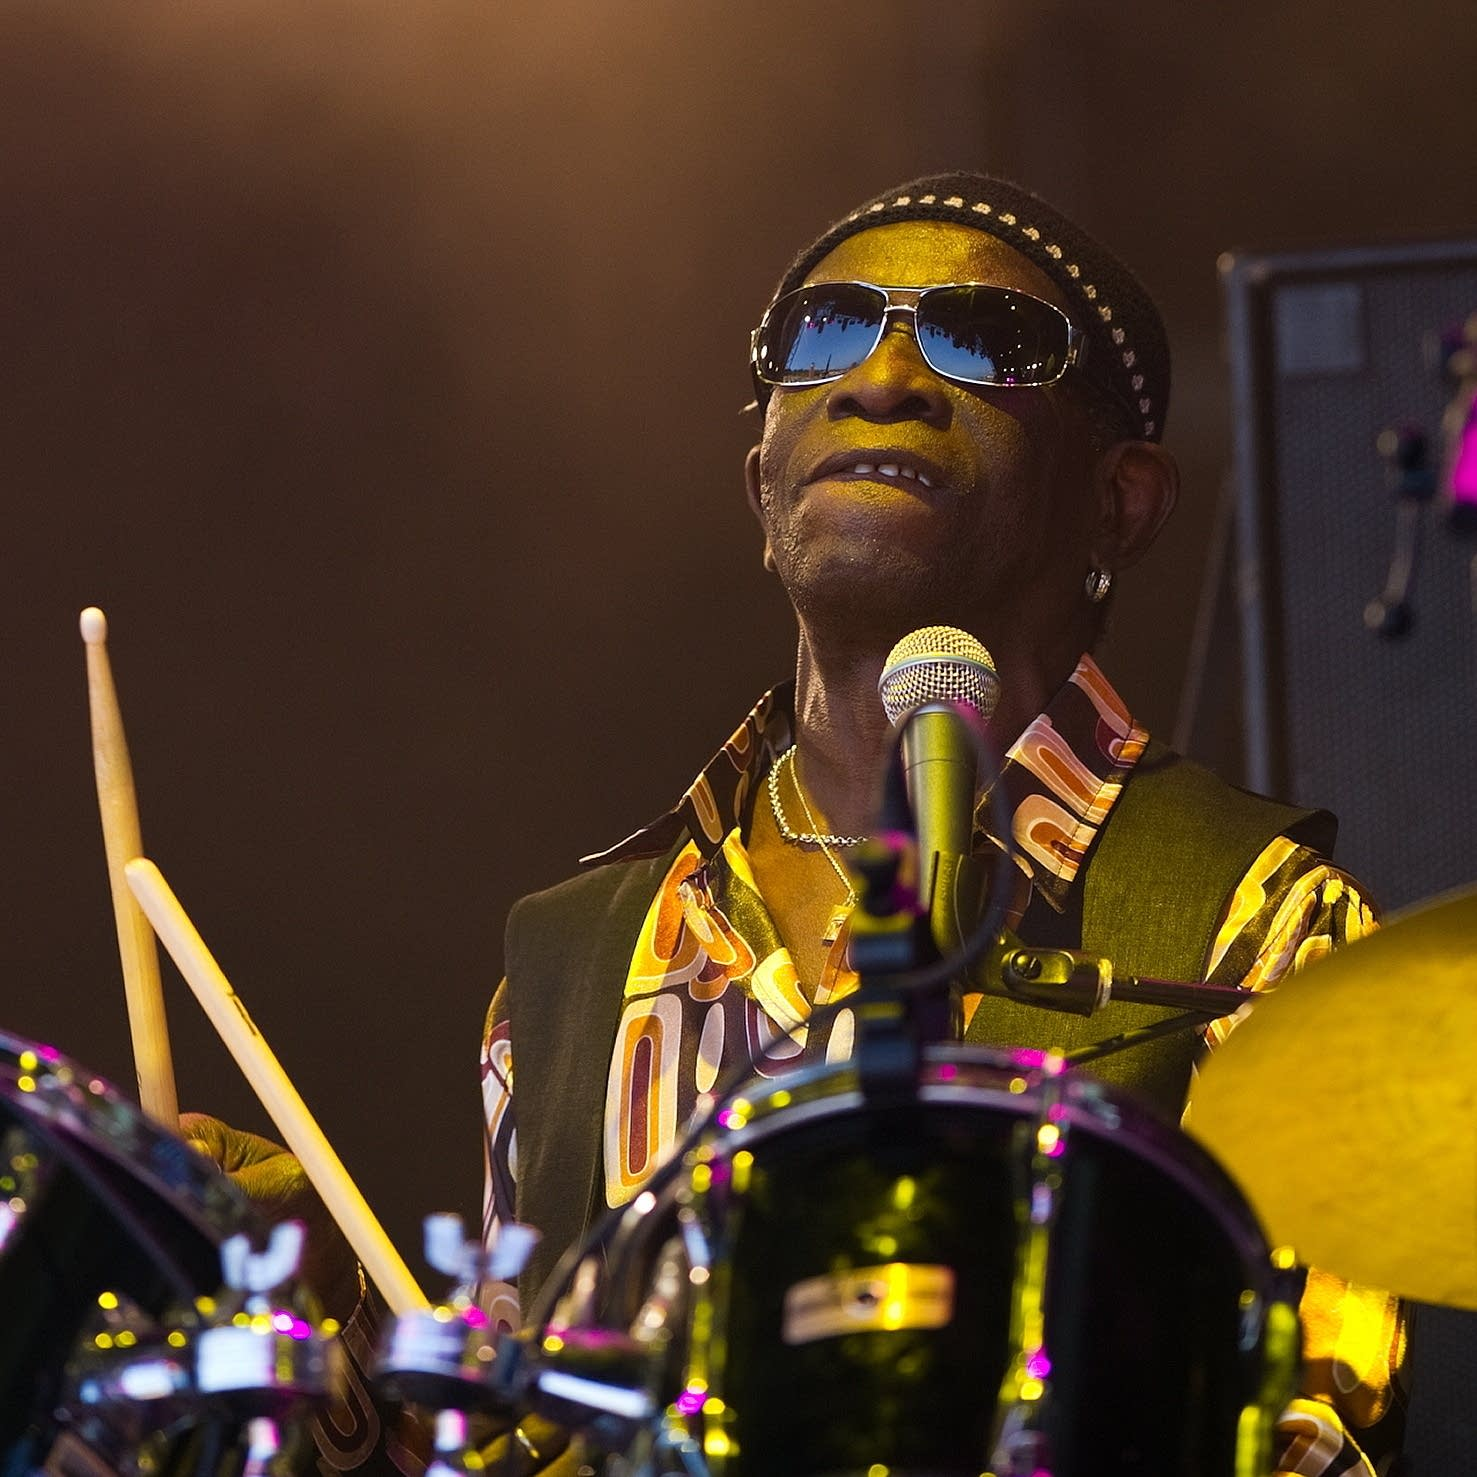 Tony Allen plays Glastonbury in 2010.